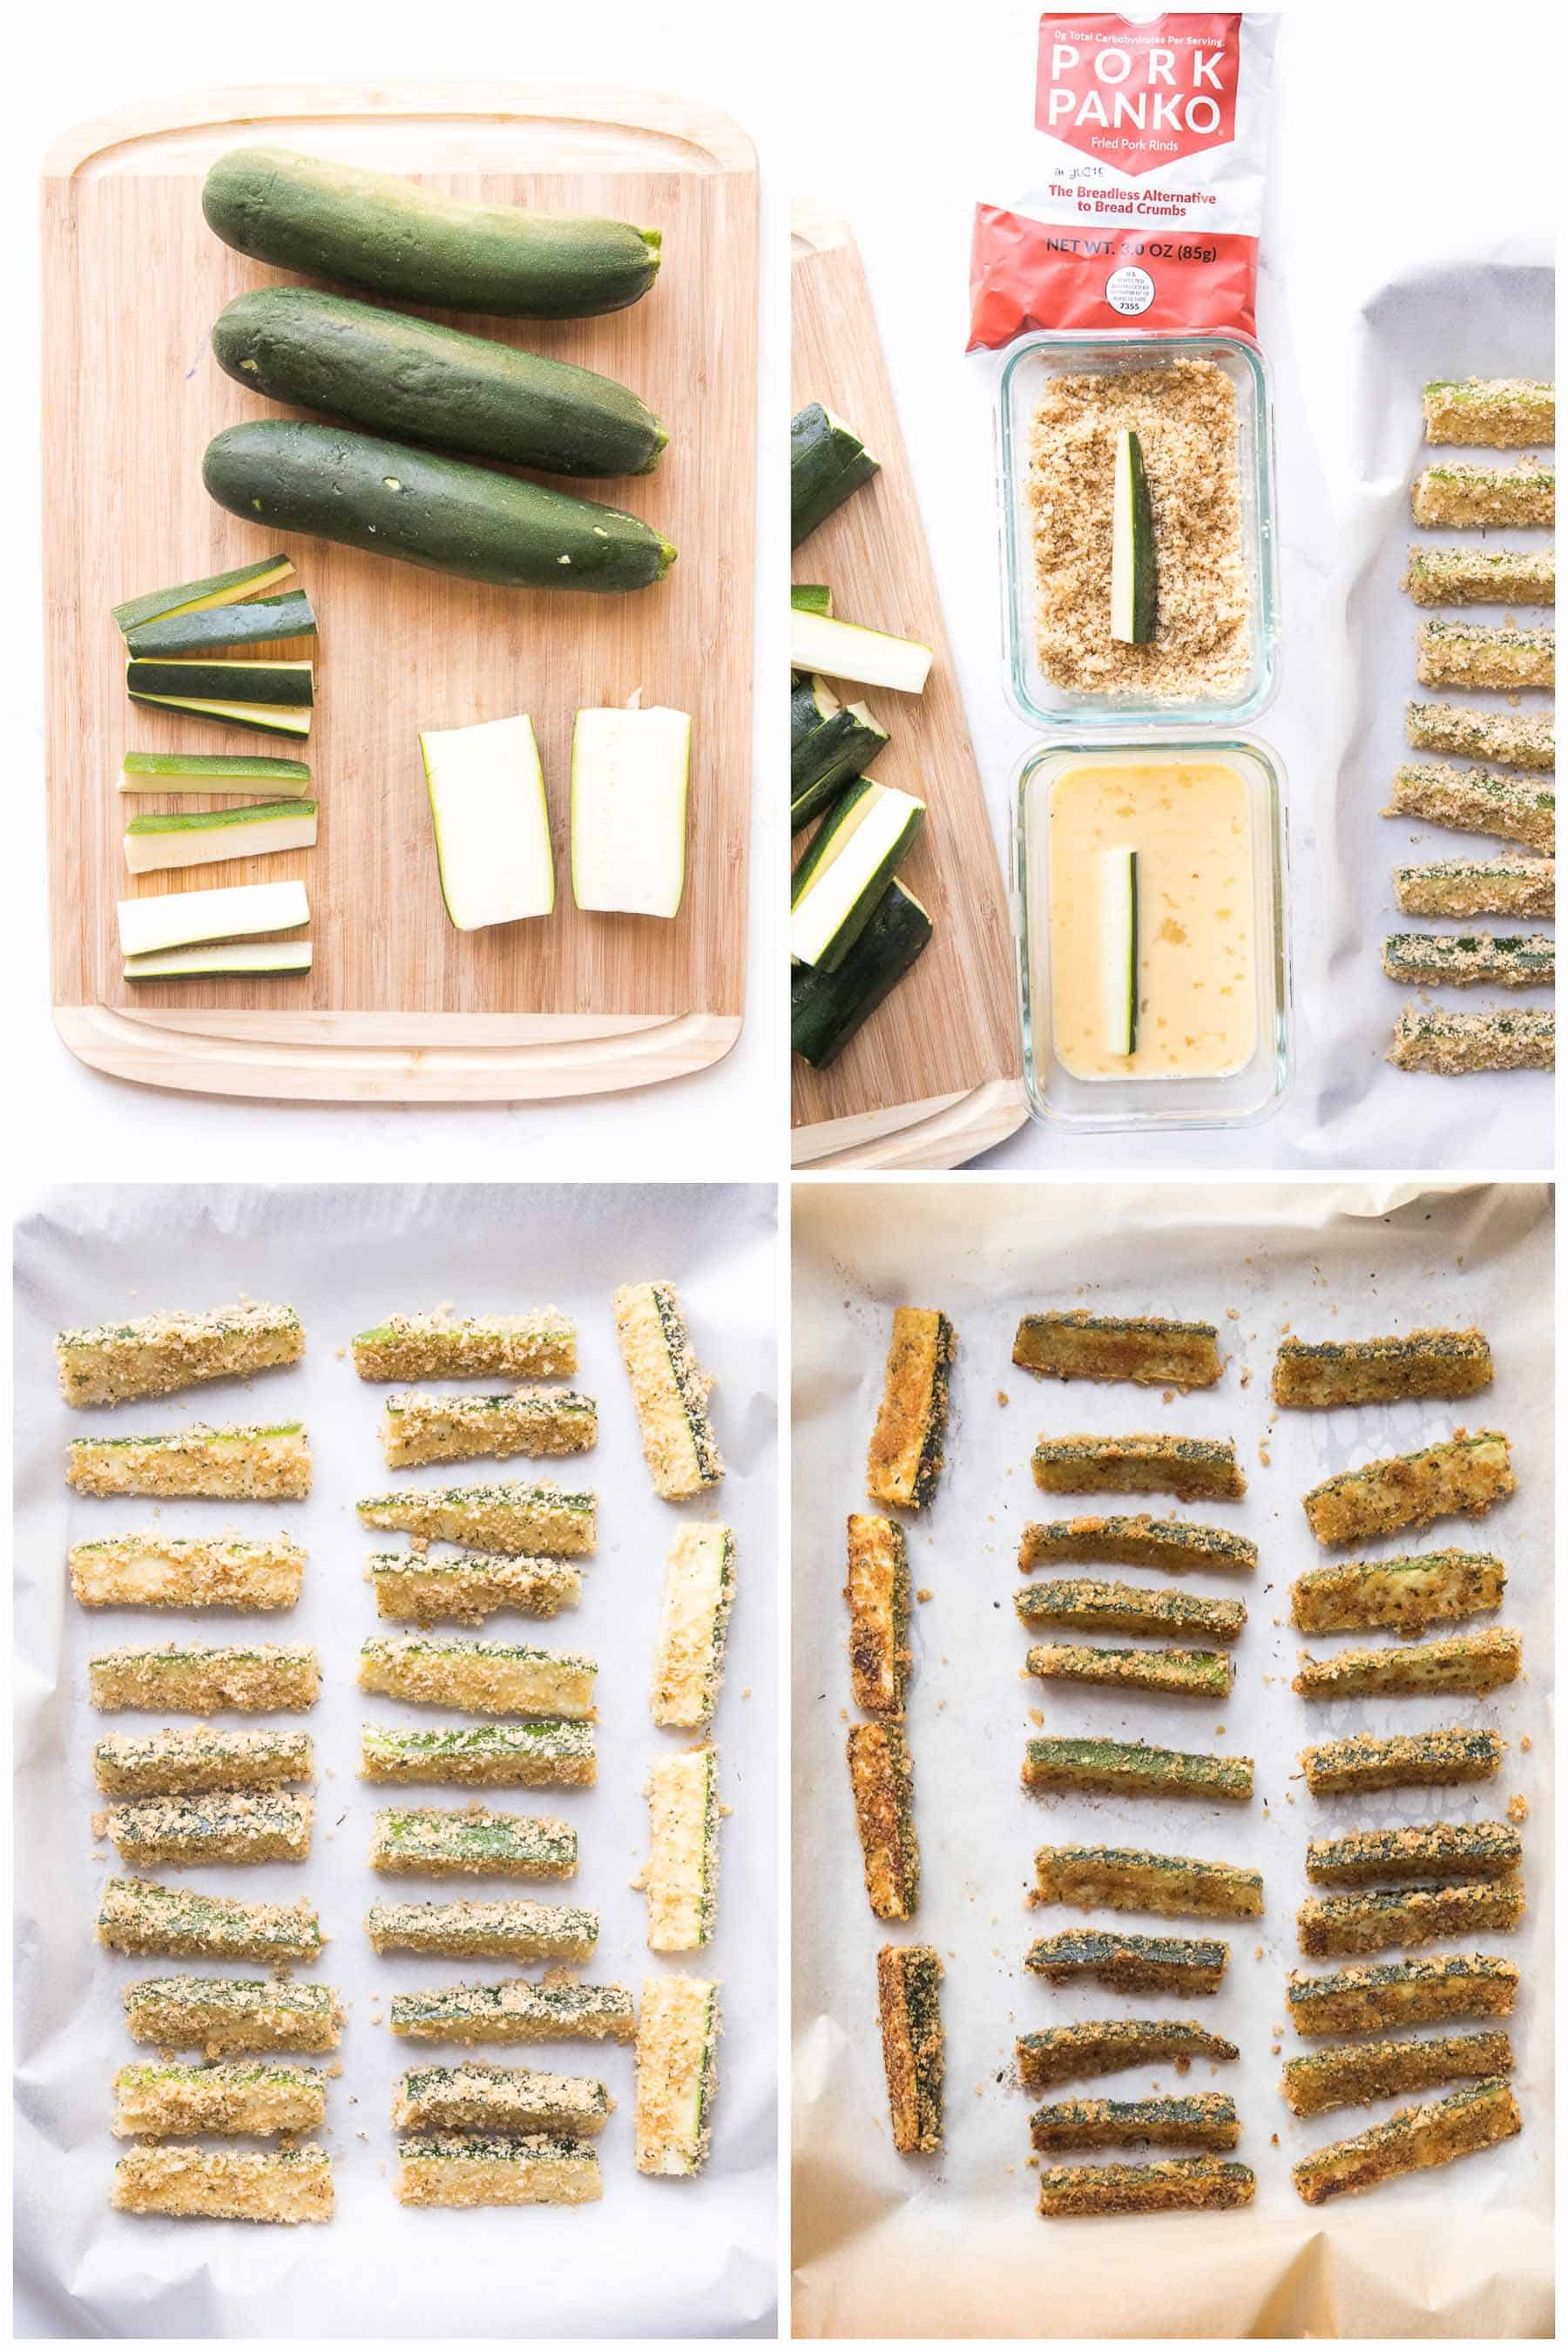 steps to making baked whole30 + keto zucchini fries